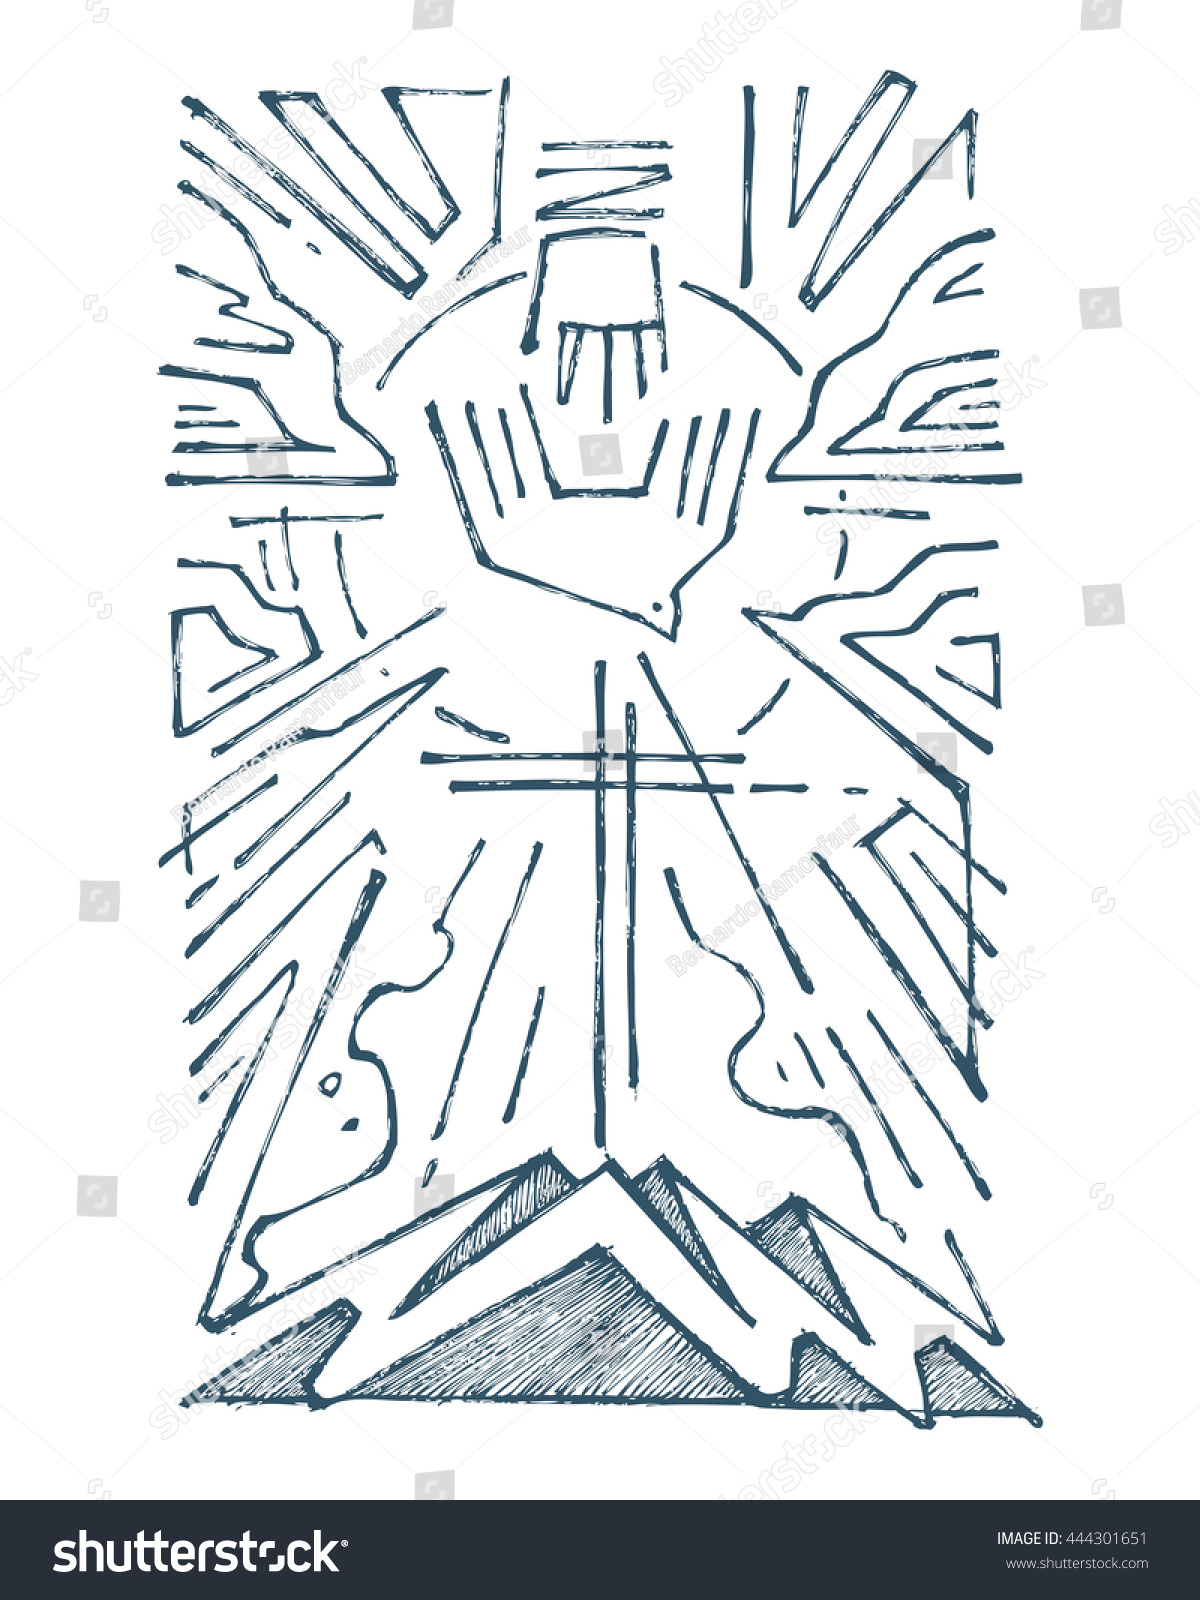 Hand drawn illustration drawing holy trinity stock vector 444301651 hand drawn illustration or drawing of the holy trinity religious symbol buycottarizona Image collections